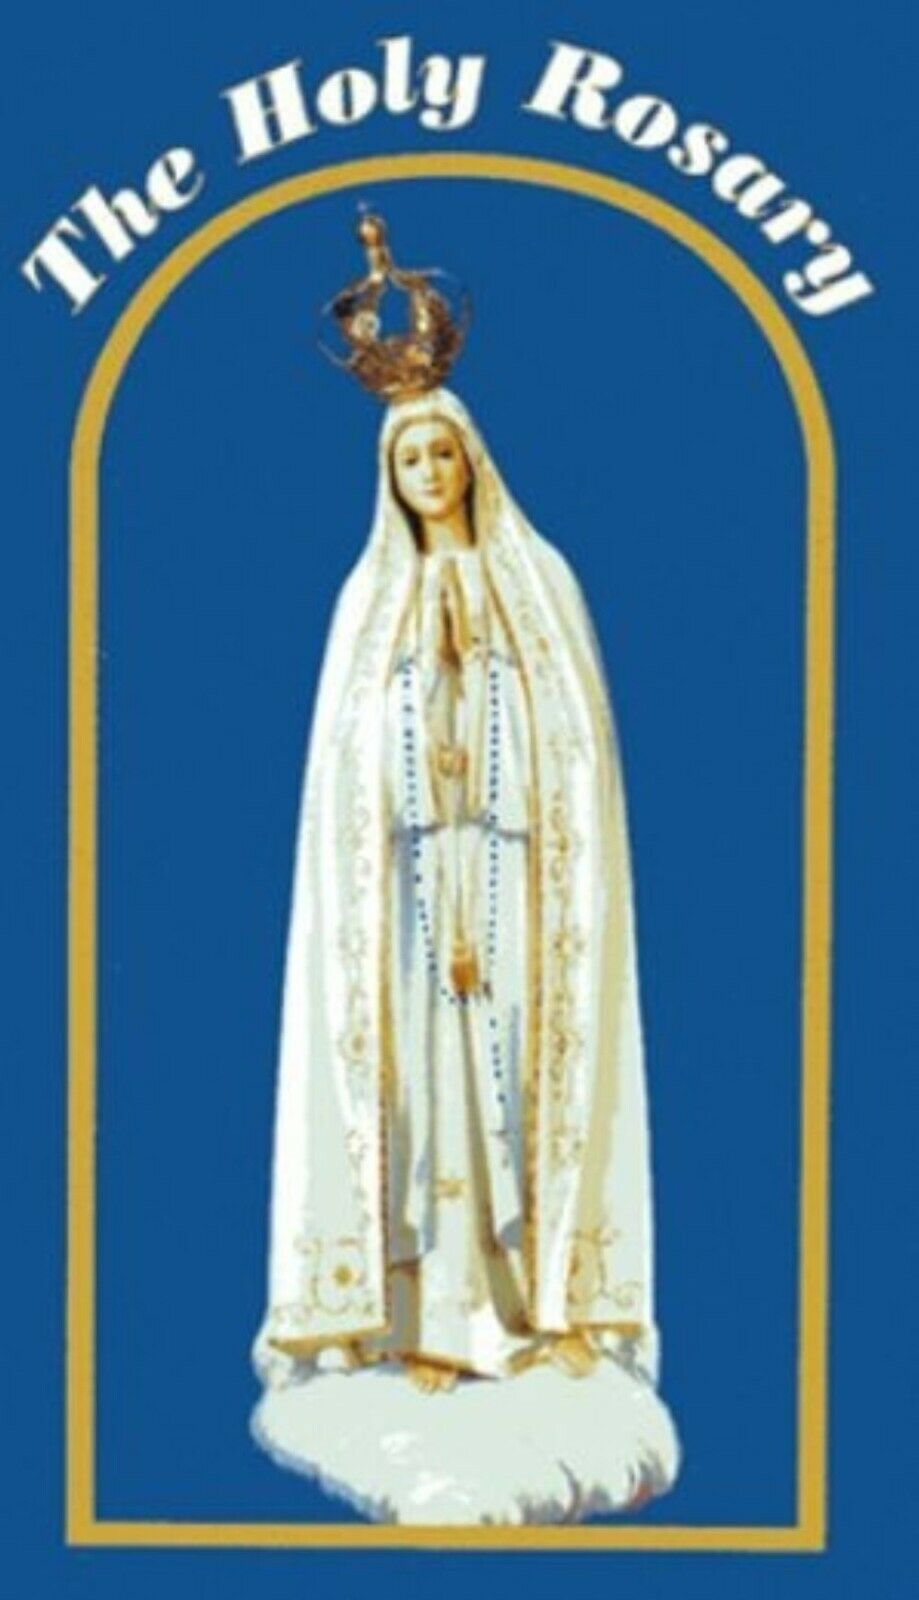 The Holy Rosary - Color Booklet - Guide for praying the Rosary